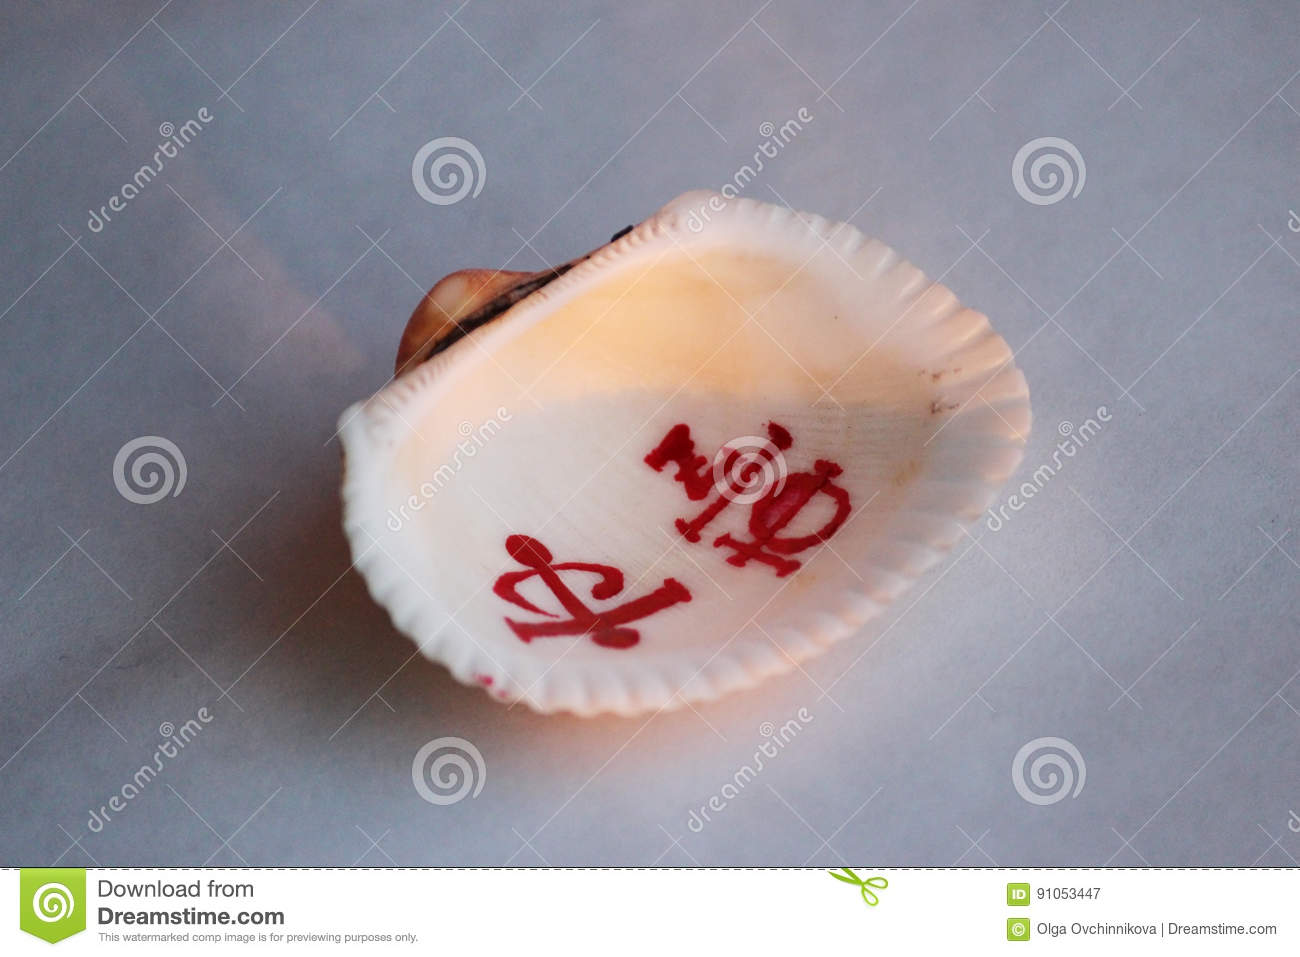 Sigil, Painted On The Sea Shell In The Ancient Egyptian Language For